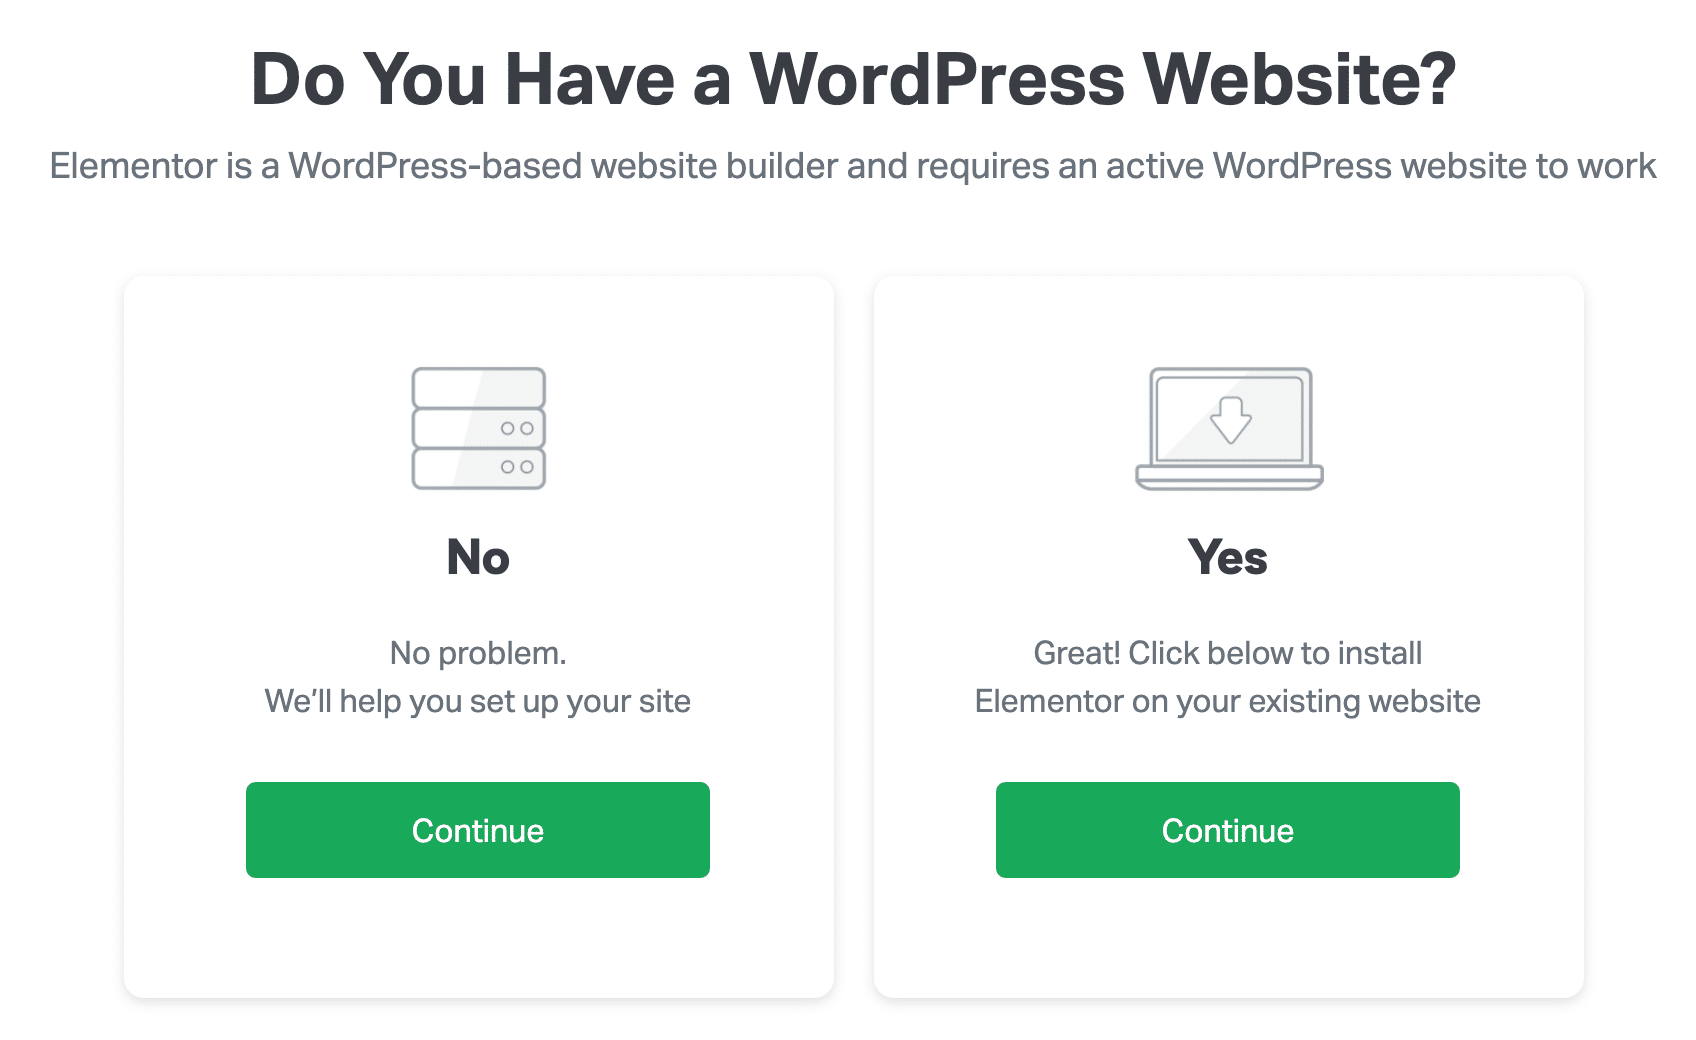 Image choices on landing page form